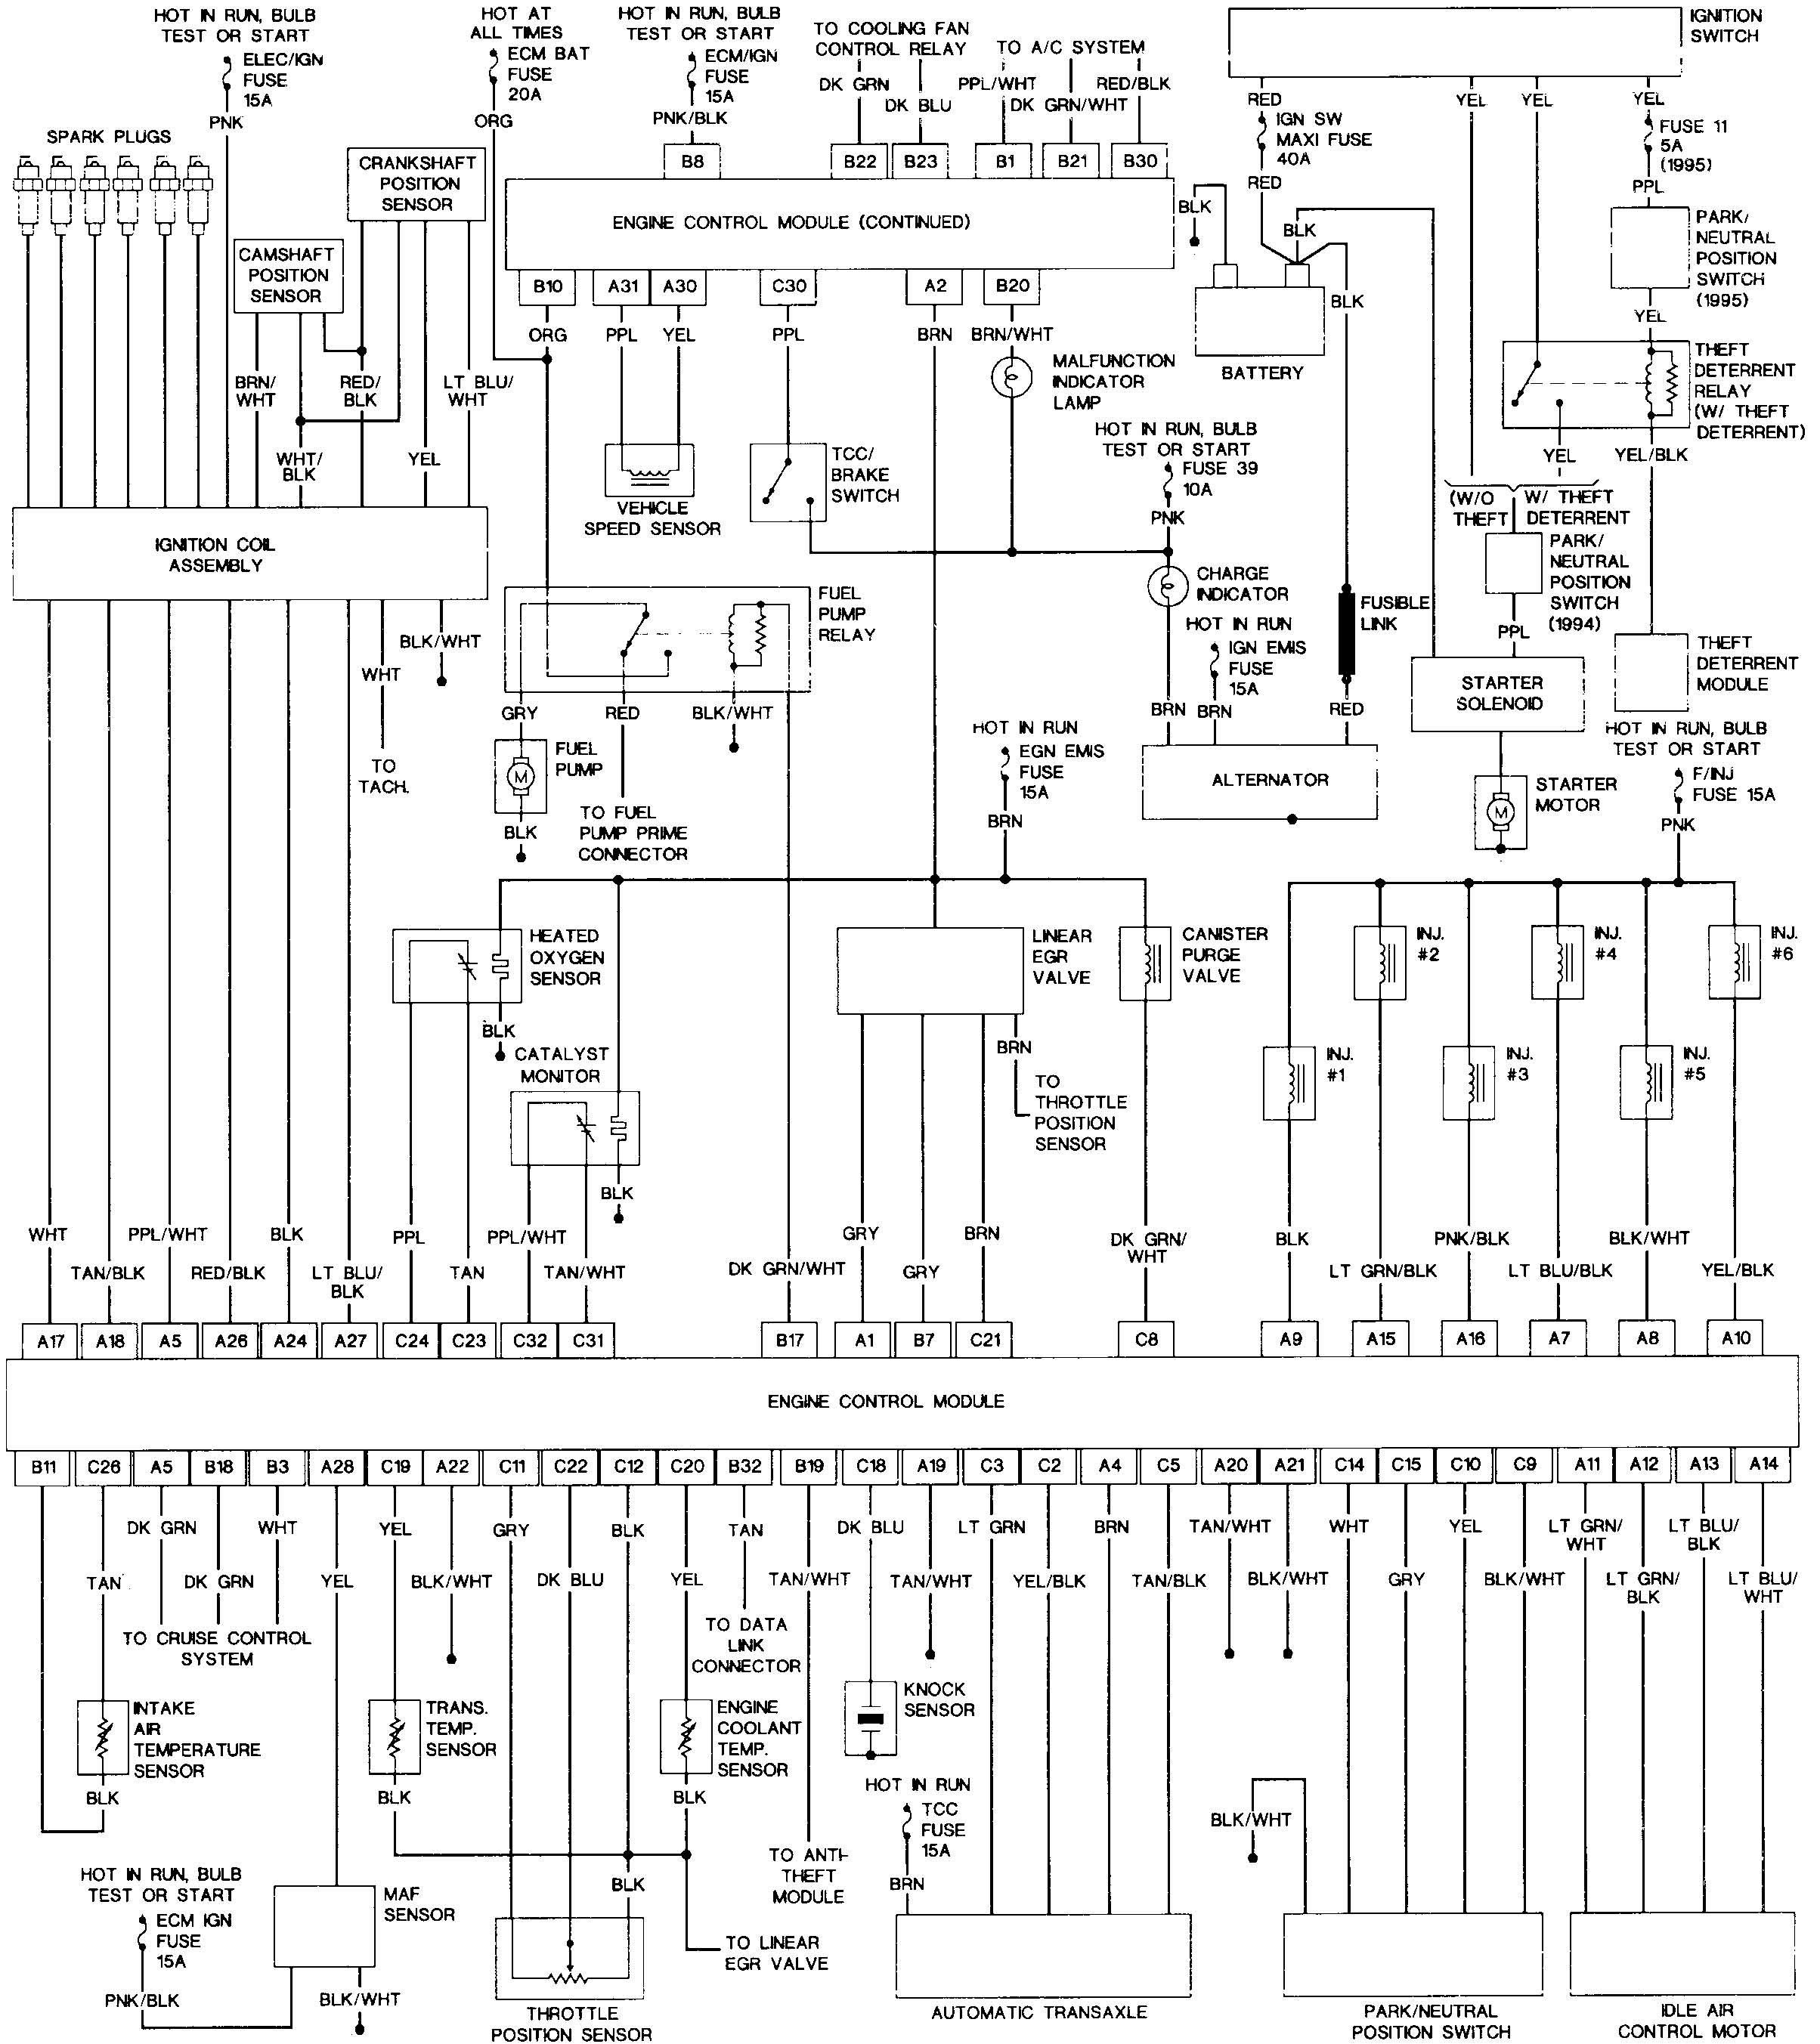 Wiring Diagram Oldsmobile Bravada Wiring Diagram